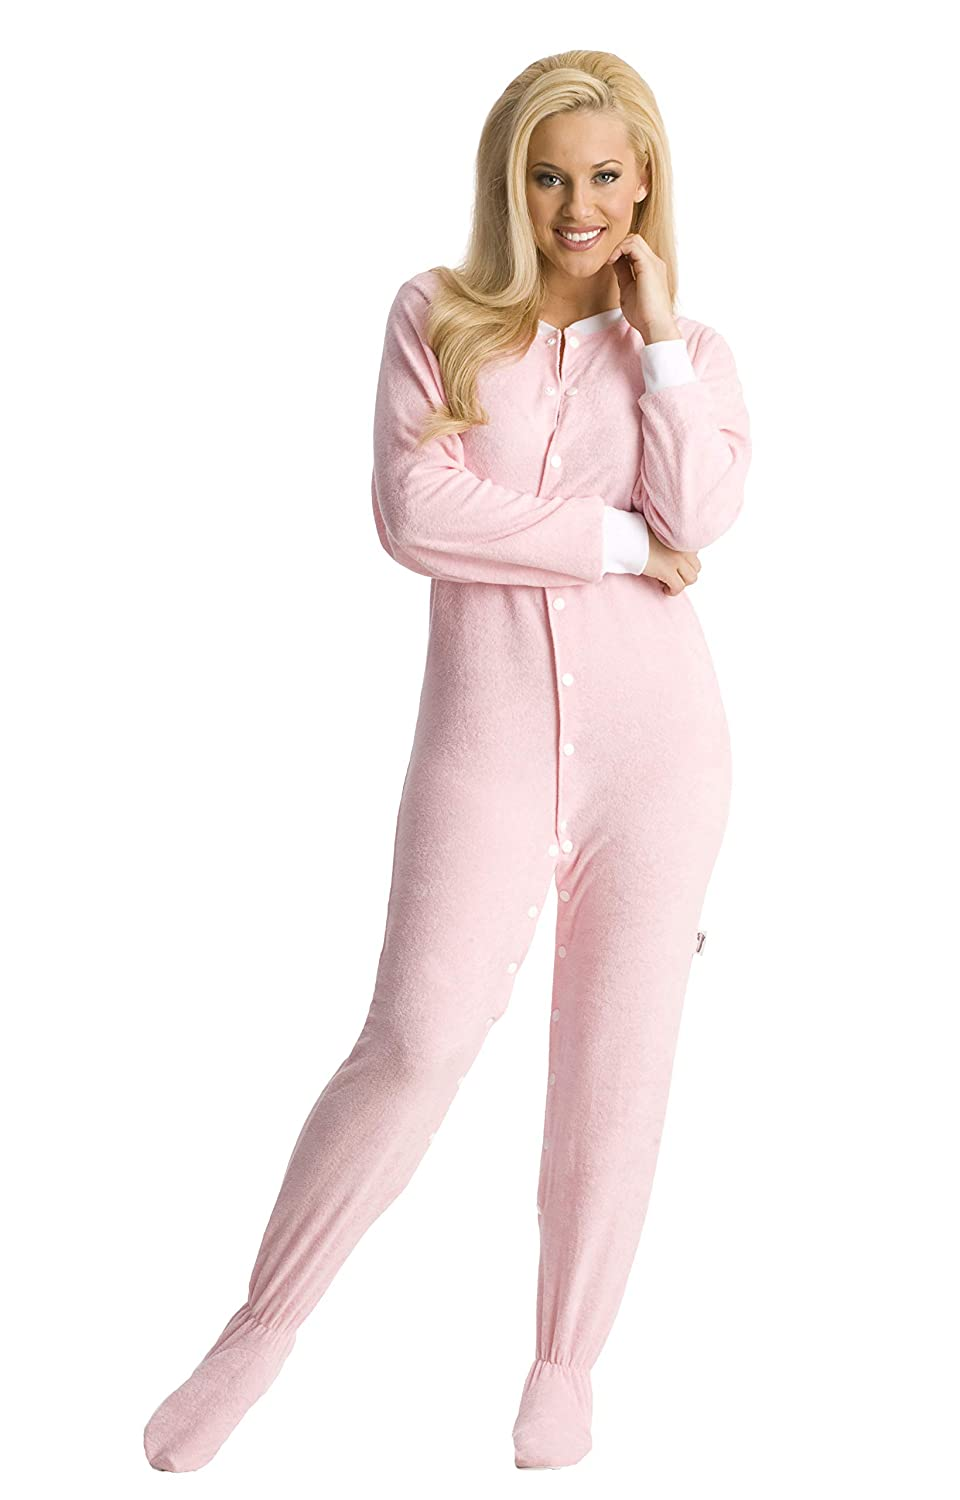 ABDL Supply Pink Terry Cloth Adult Footed Onesie Pajamas